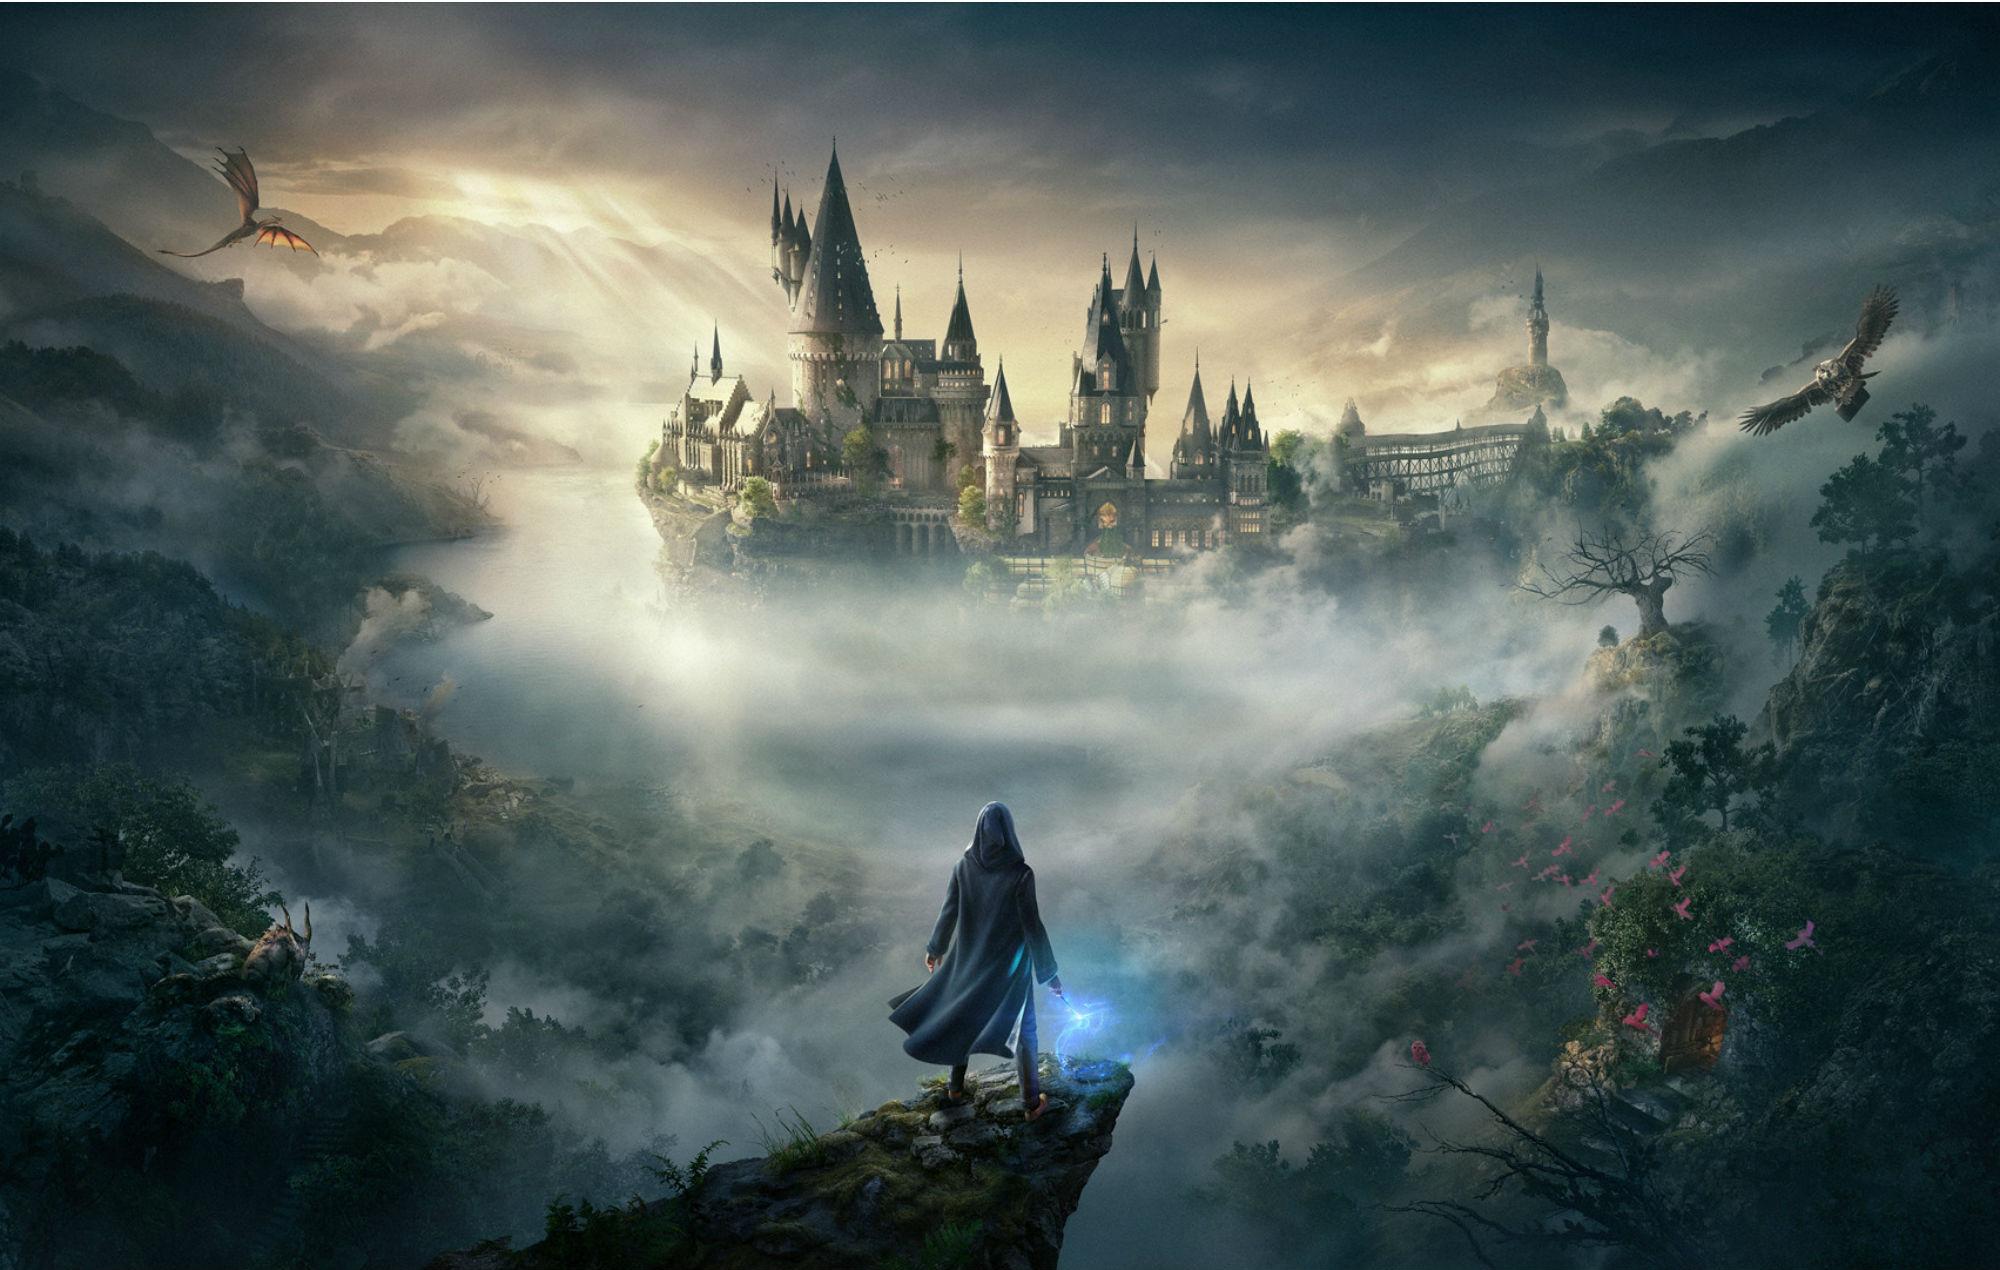 'Hogwarts Legacy' is an open-world 'Harry Potter' game coming in 2021